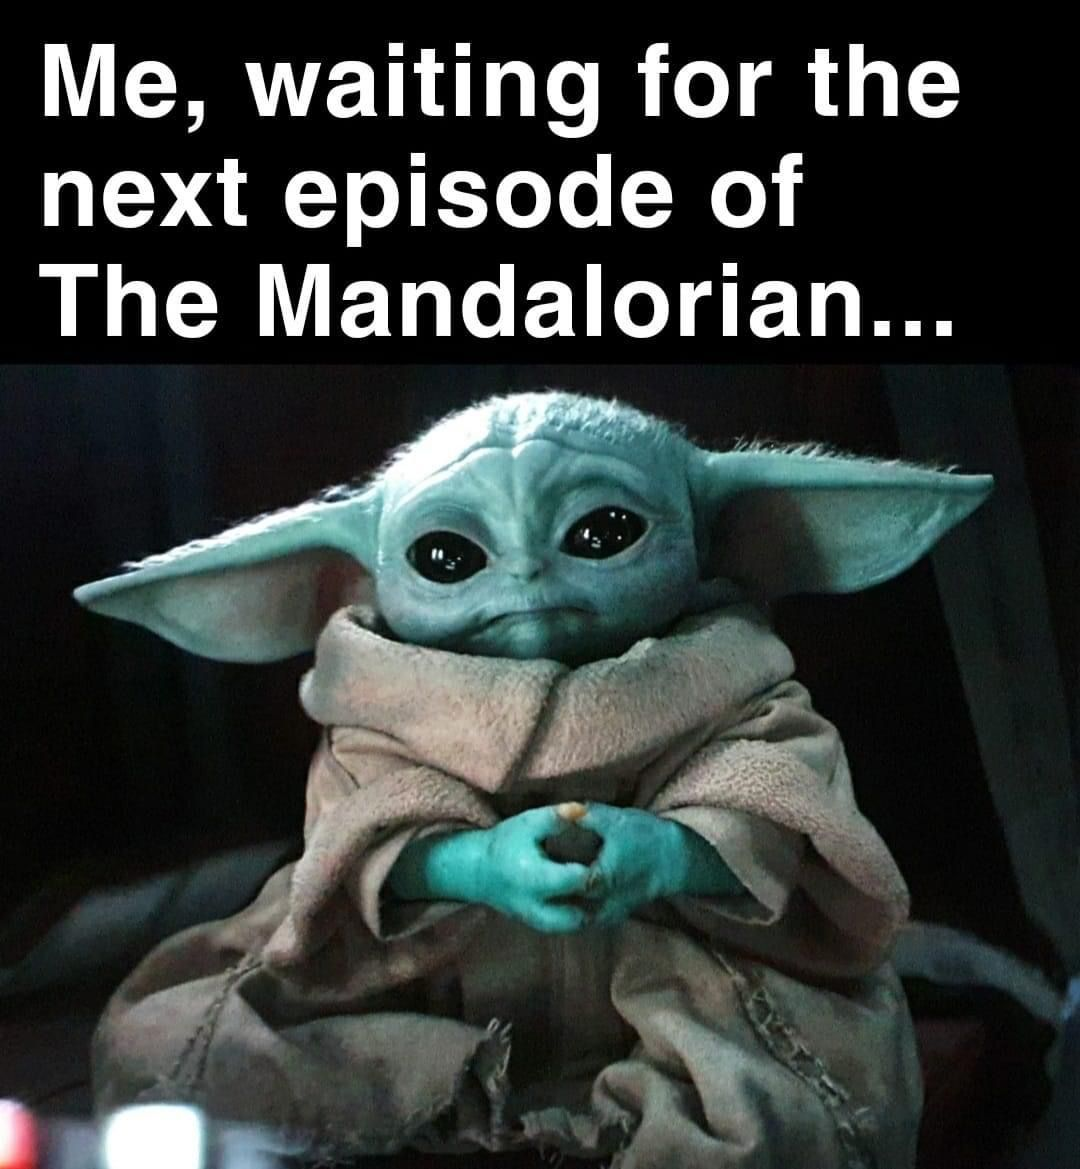 Pin By Grace Savage On Geek Pics For The Geek In Us All Yoda Funny Yoda Wallpaper Yoda Images